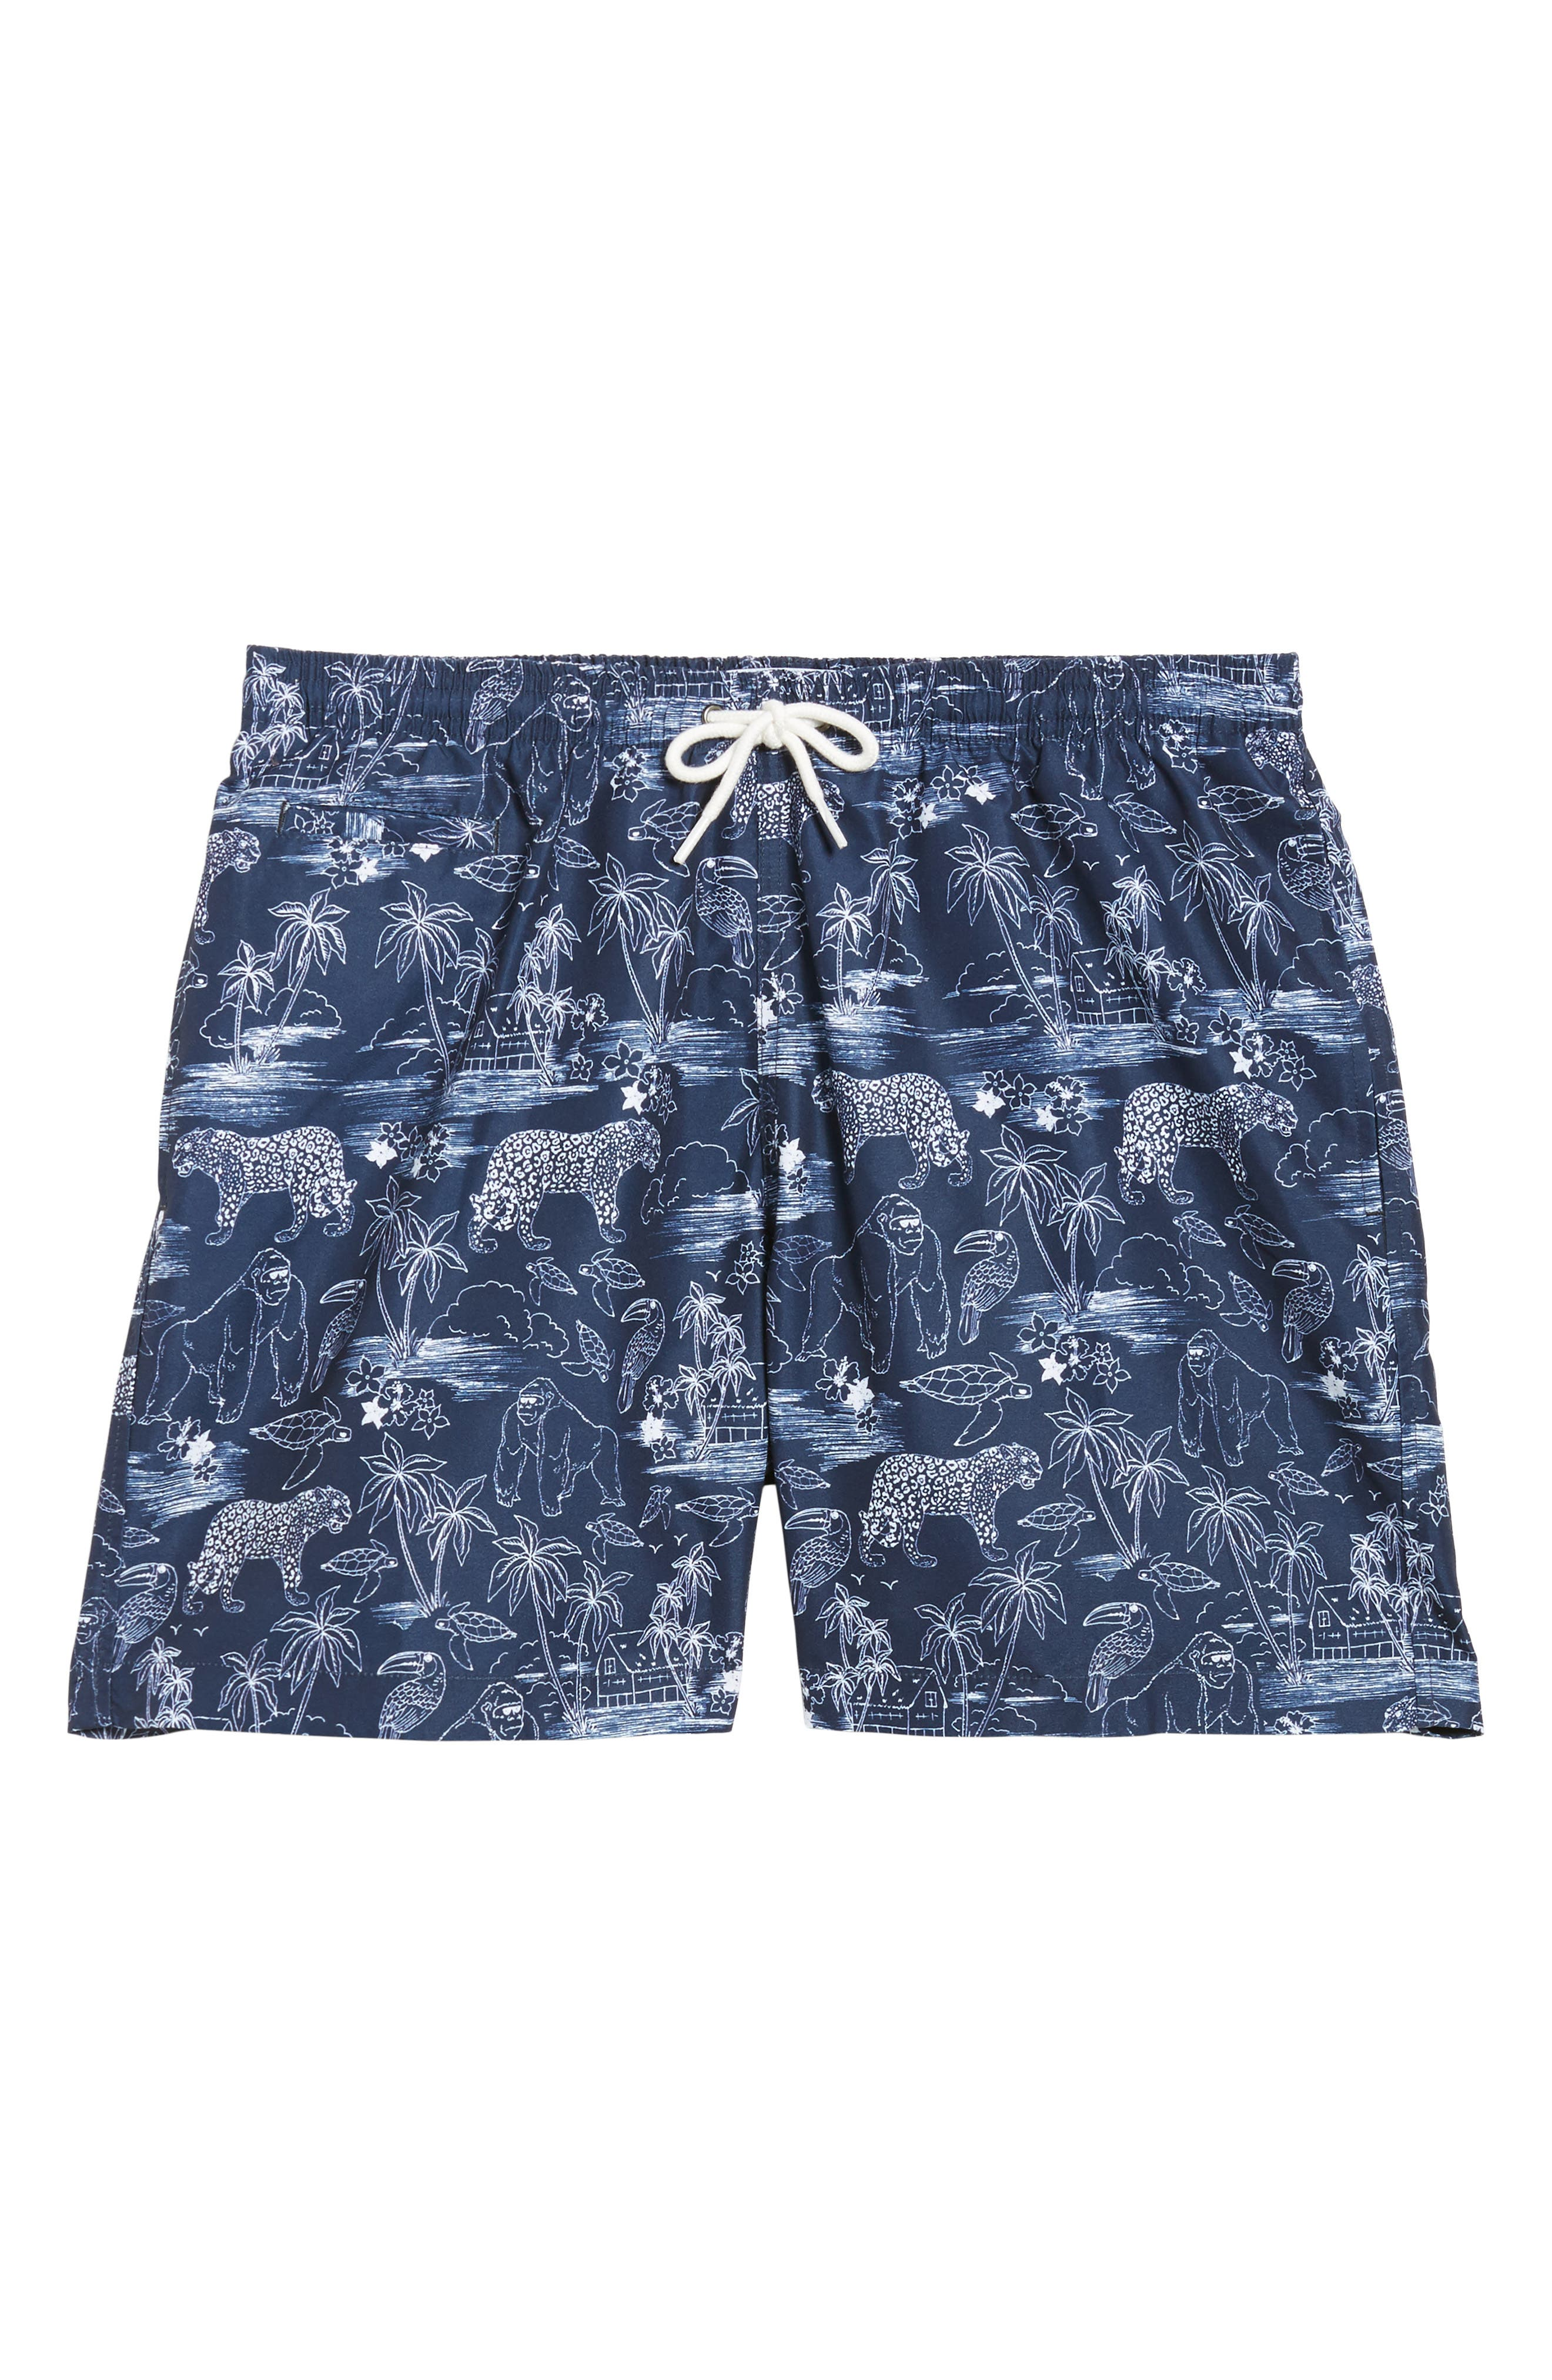 Trunks Surf & Co. San O Jungle Safari Swim Trunks,                             Alternate thumbnail 6, color,                             100